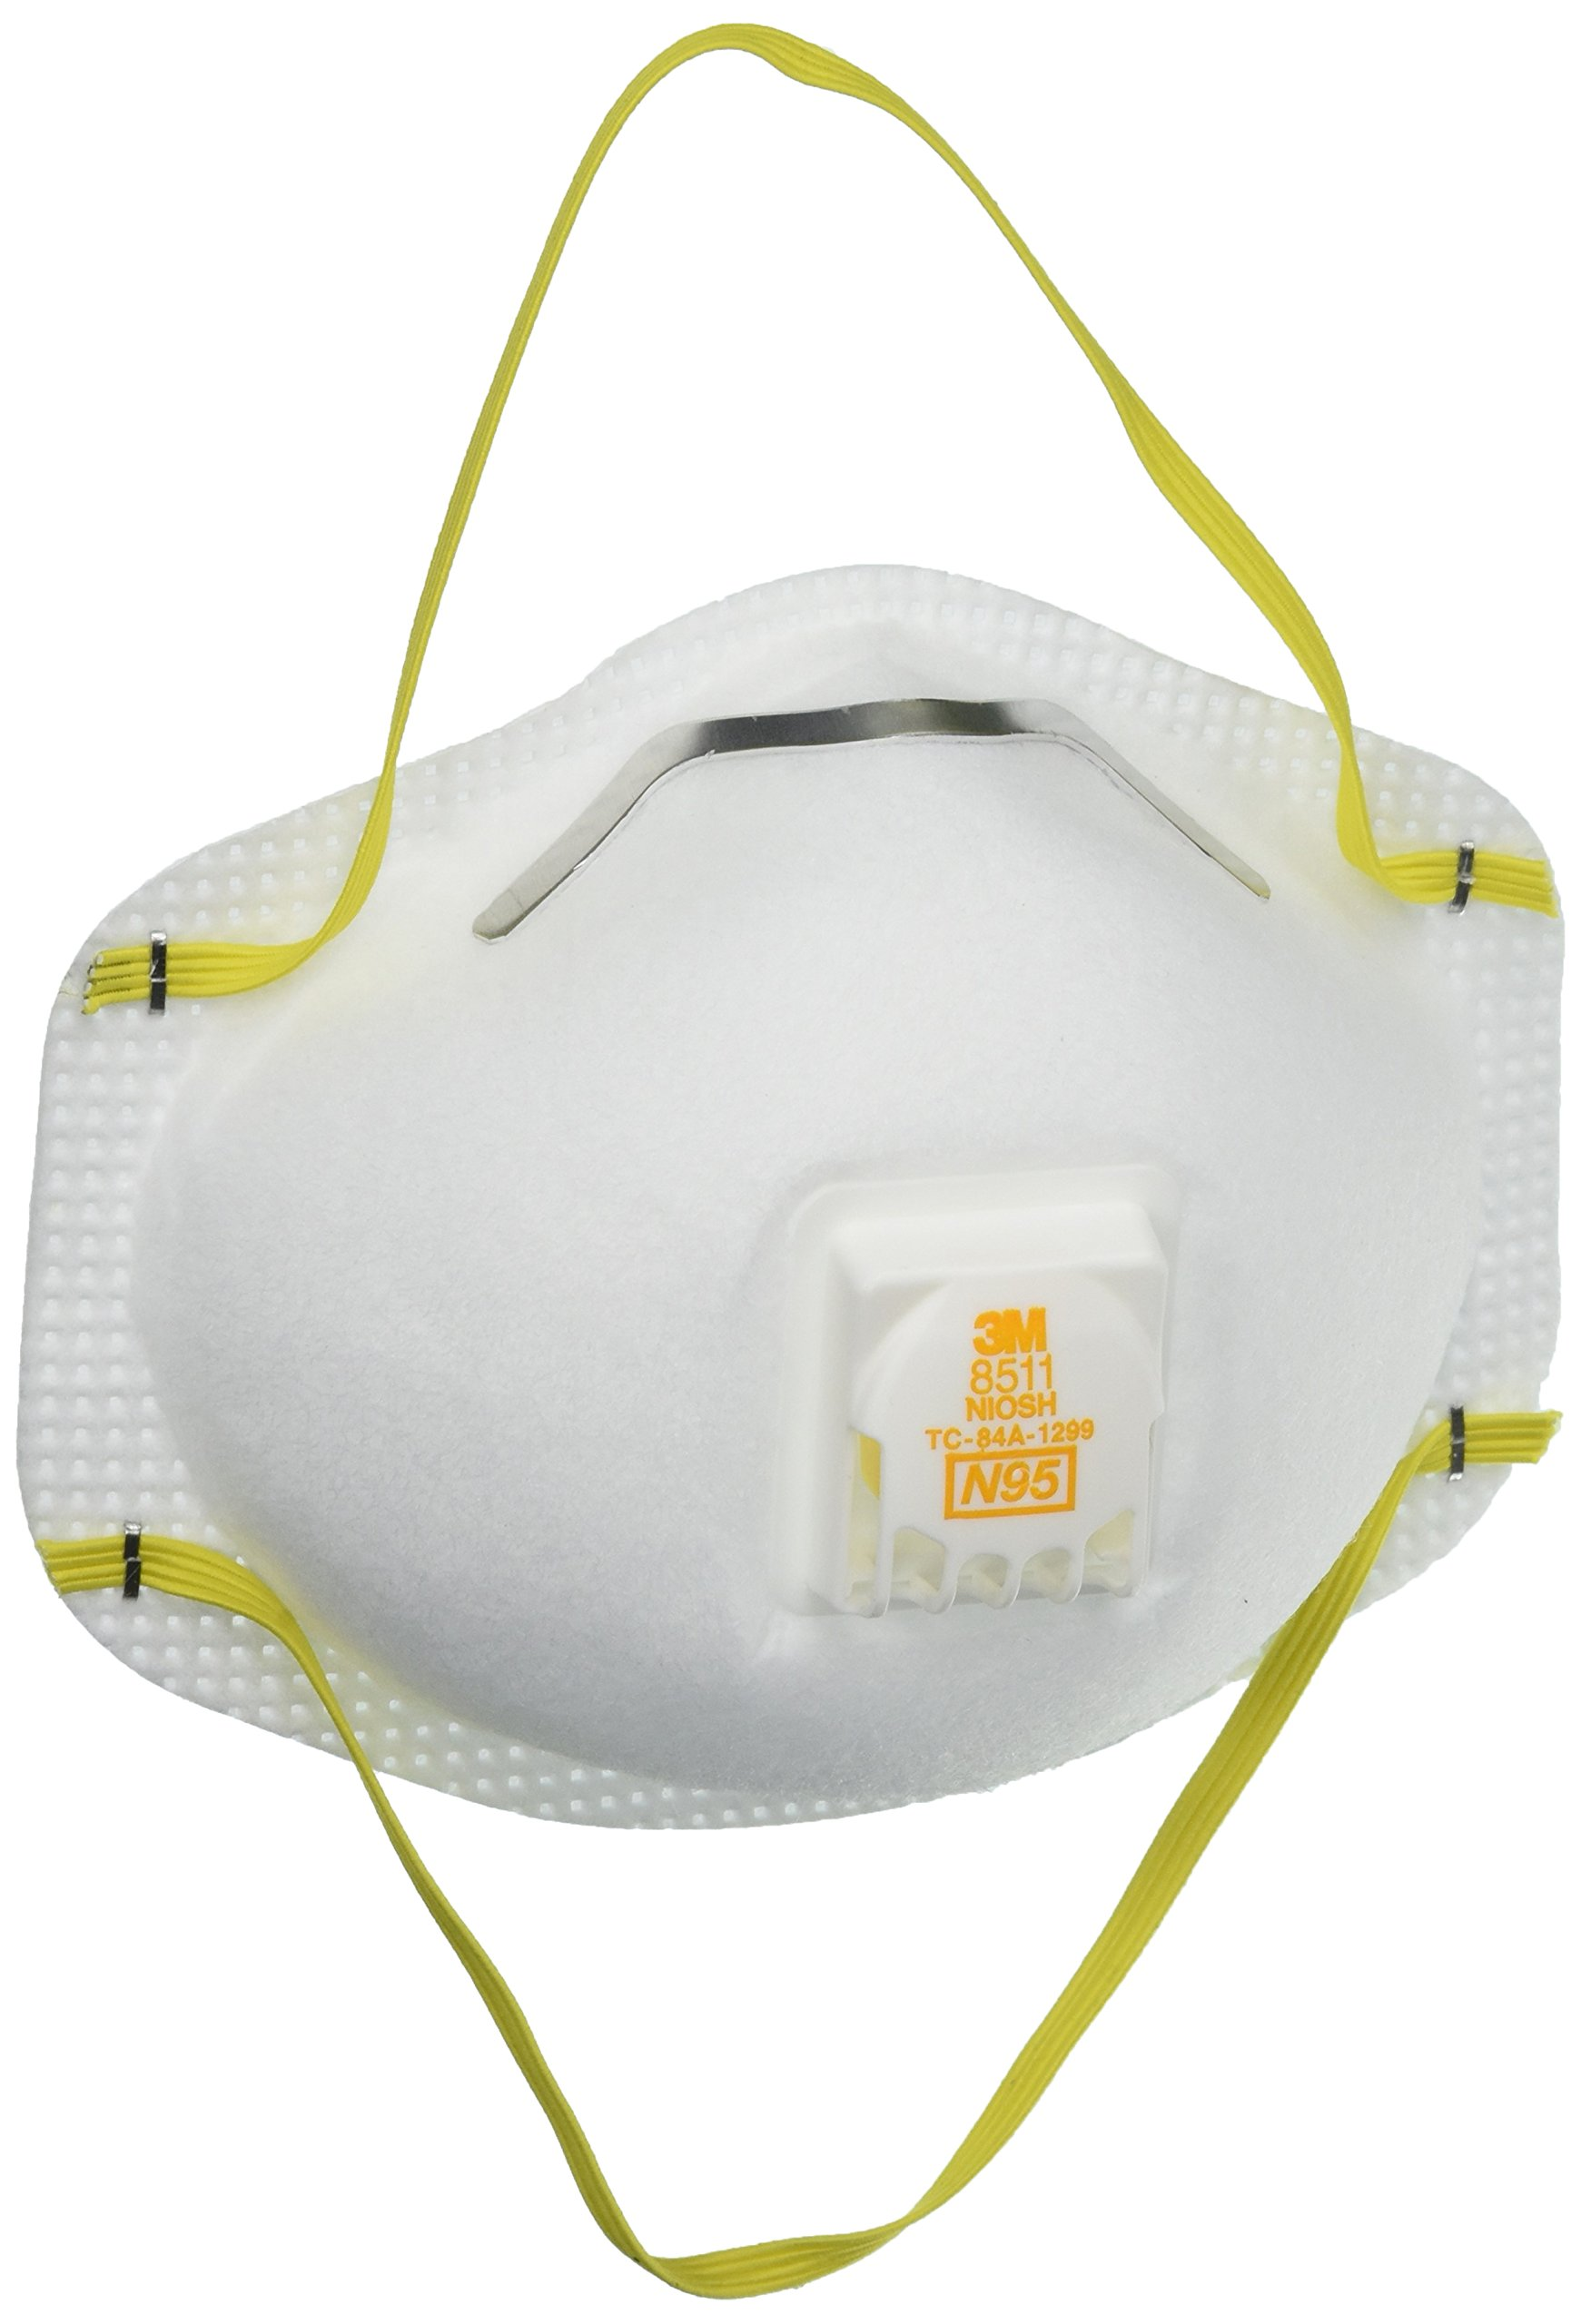 3M Particulate Respirator 8511 N95 with 3M Cool Flow™ Exhalation Valve by 3M